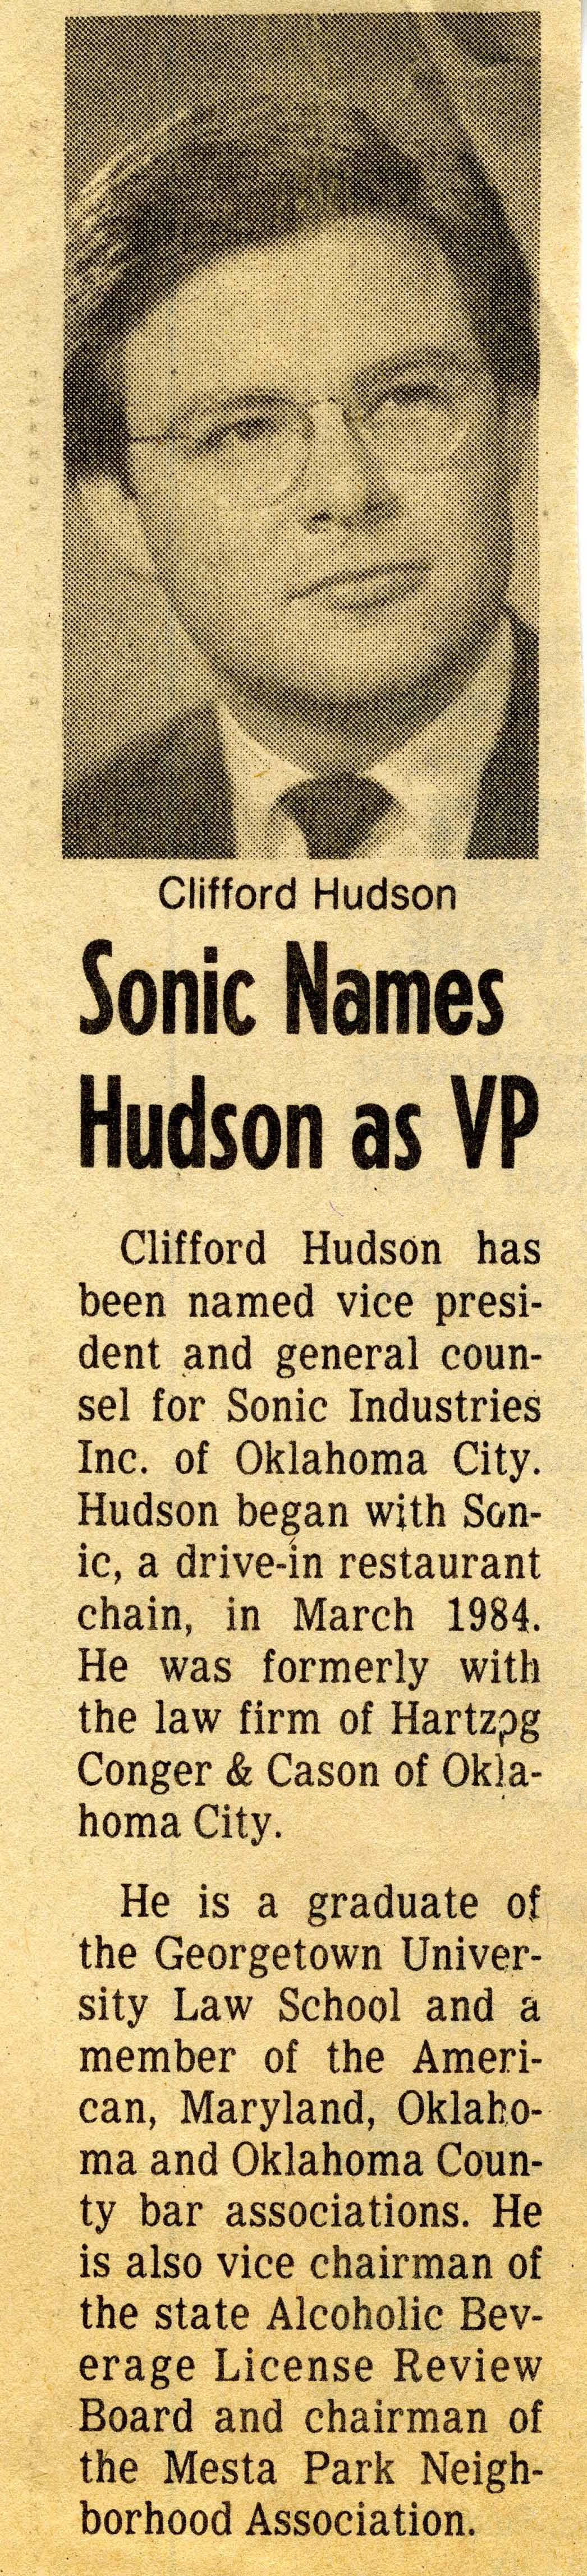 Clifford Hudson VP article